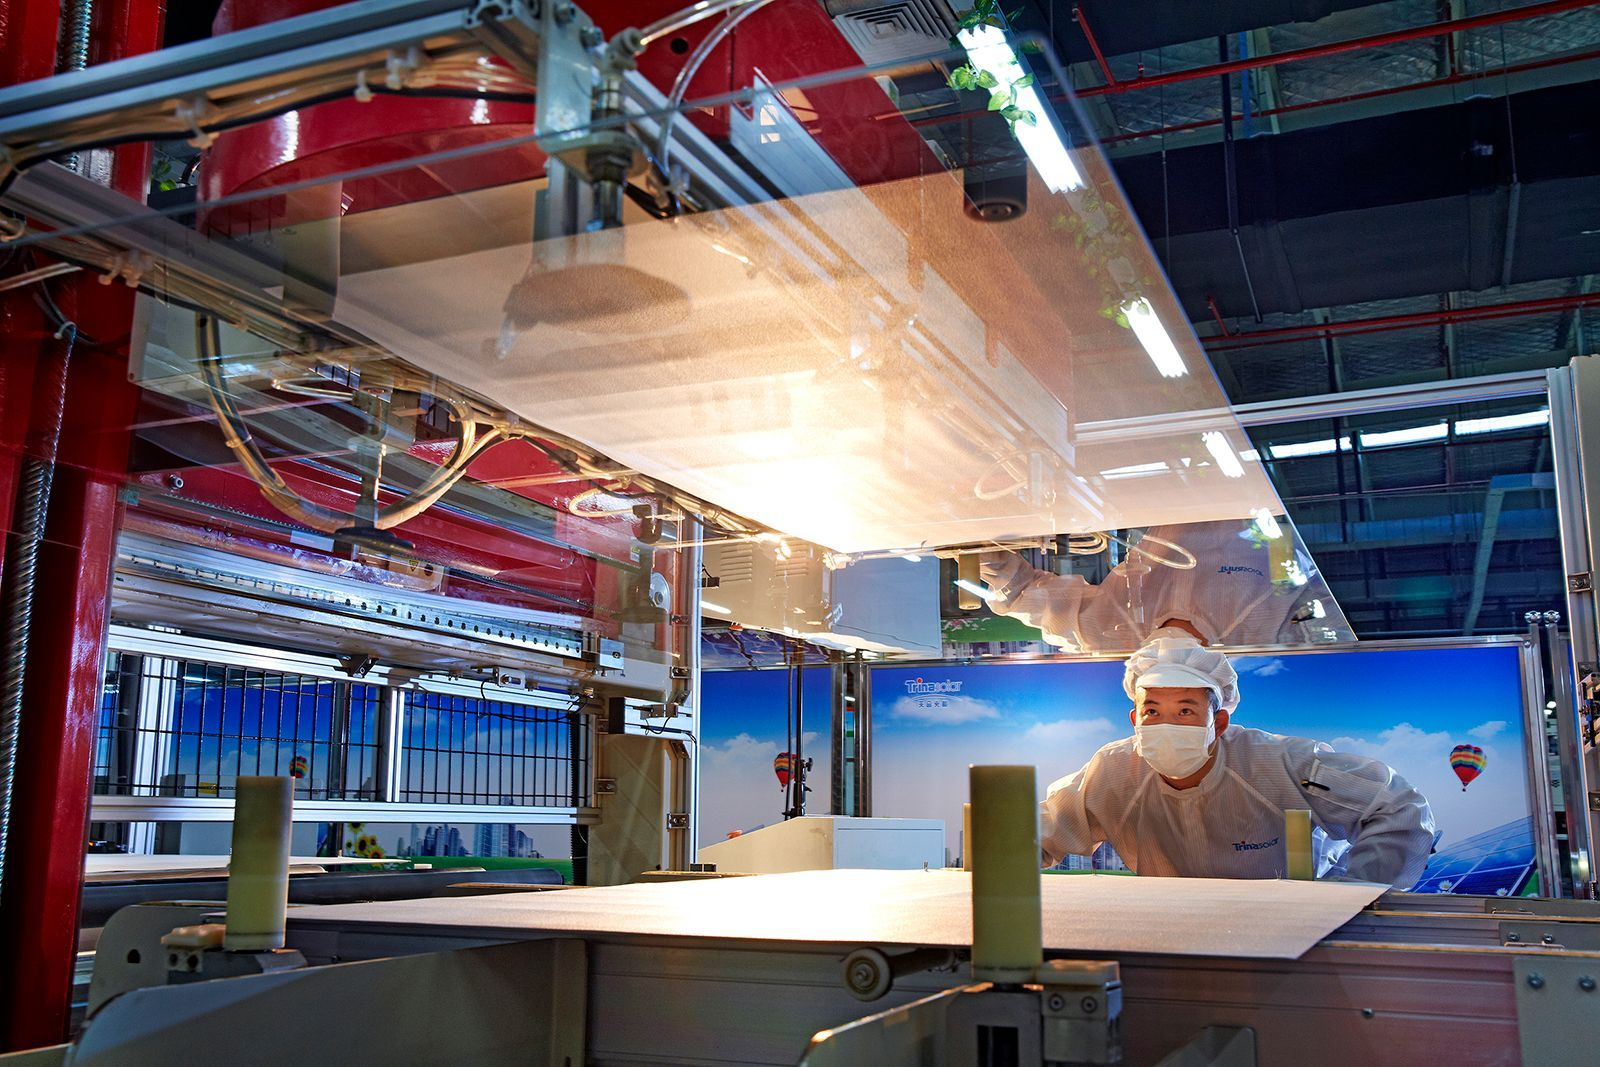 This article continues our series of features introducing new methodology that allows leading PV module producers to be categorised, ranked and short-listed by manufacturing and financial strength metrics; ultimately providing an investor-risk (or bankability) profile of bankable module suppliers for non-residential end-market selection. Image: Trina Solar